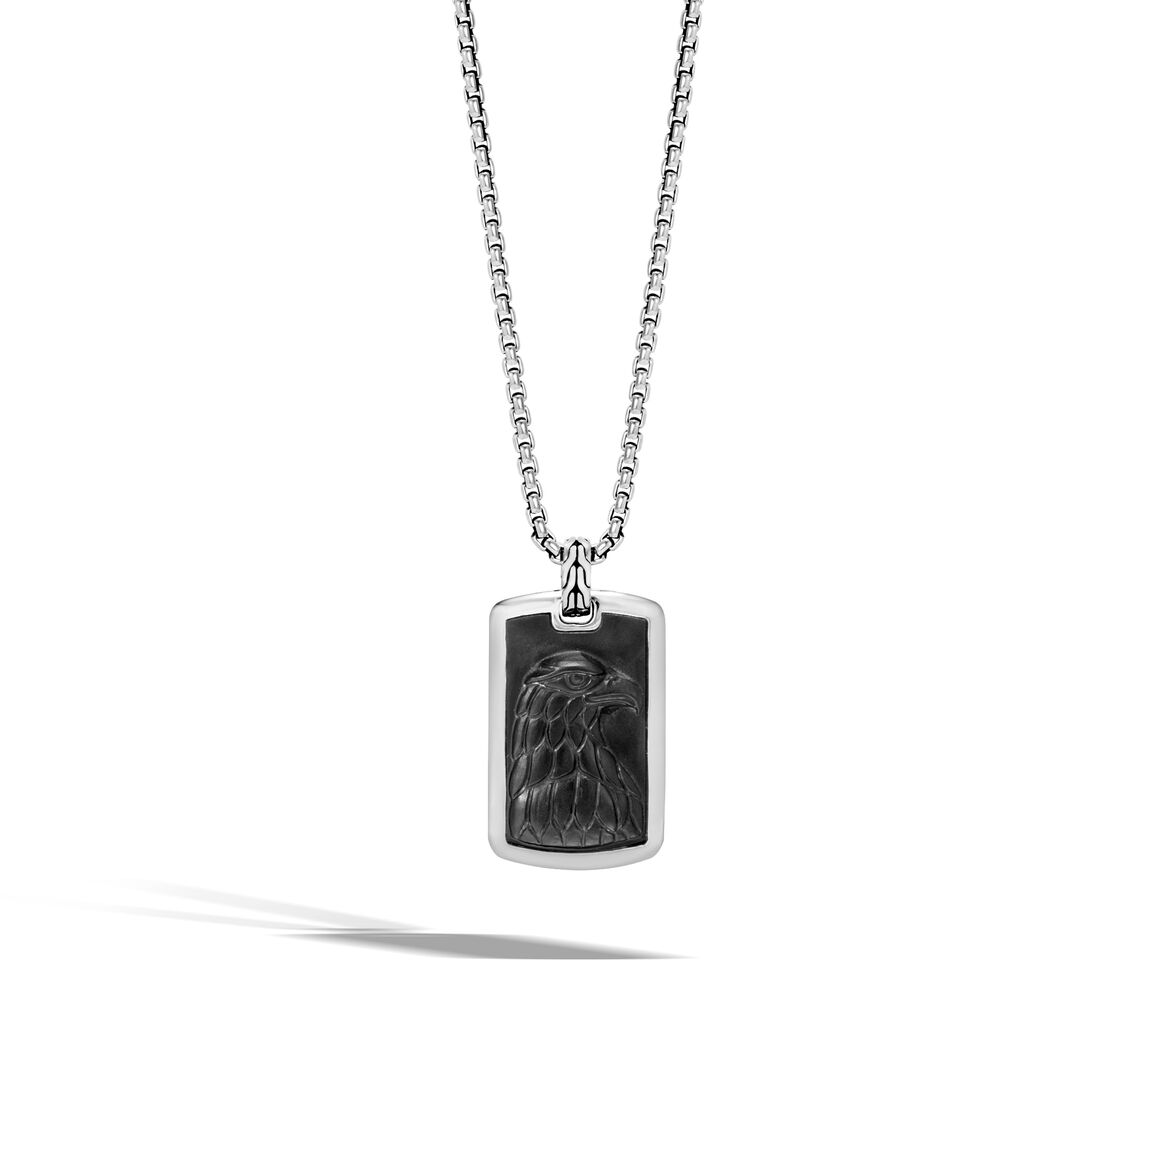 Legends Eagle Large Dog Tag Necklace in Silver with Gemstone